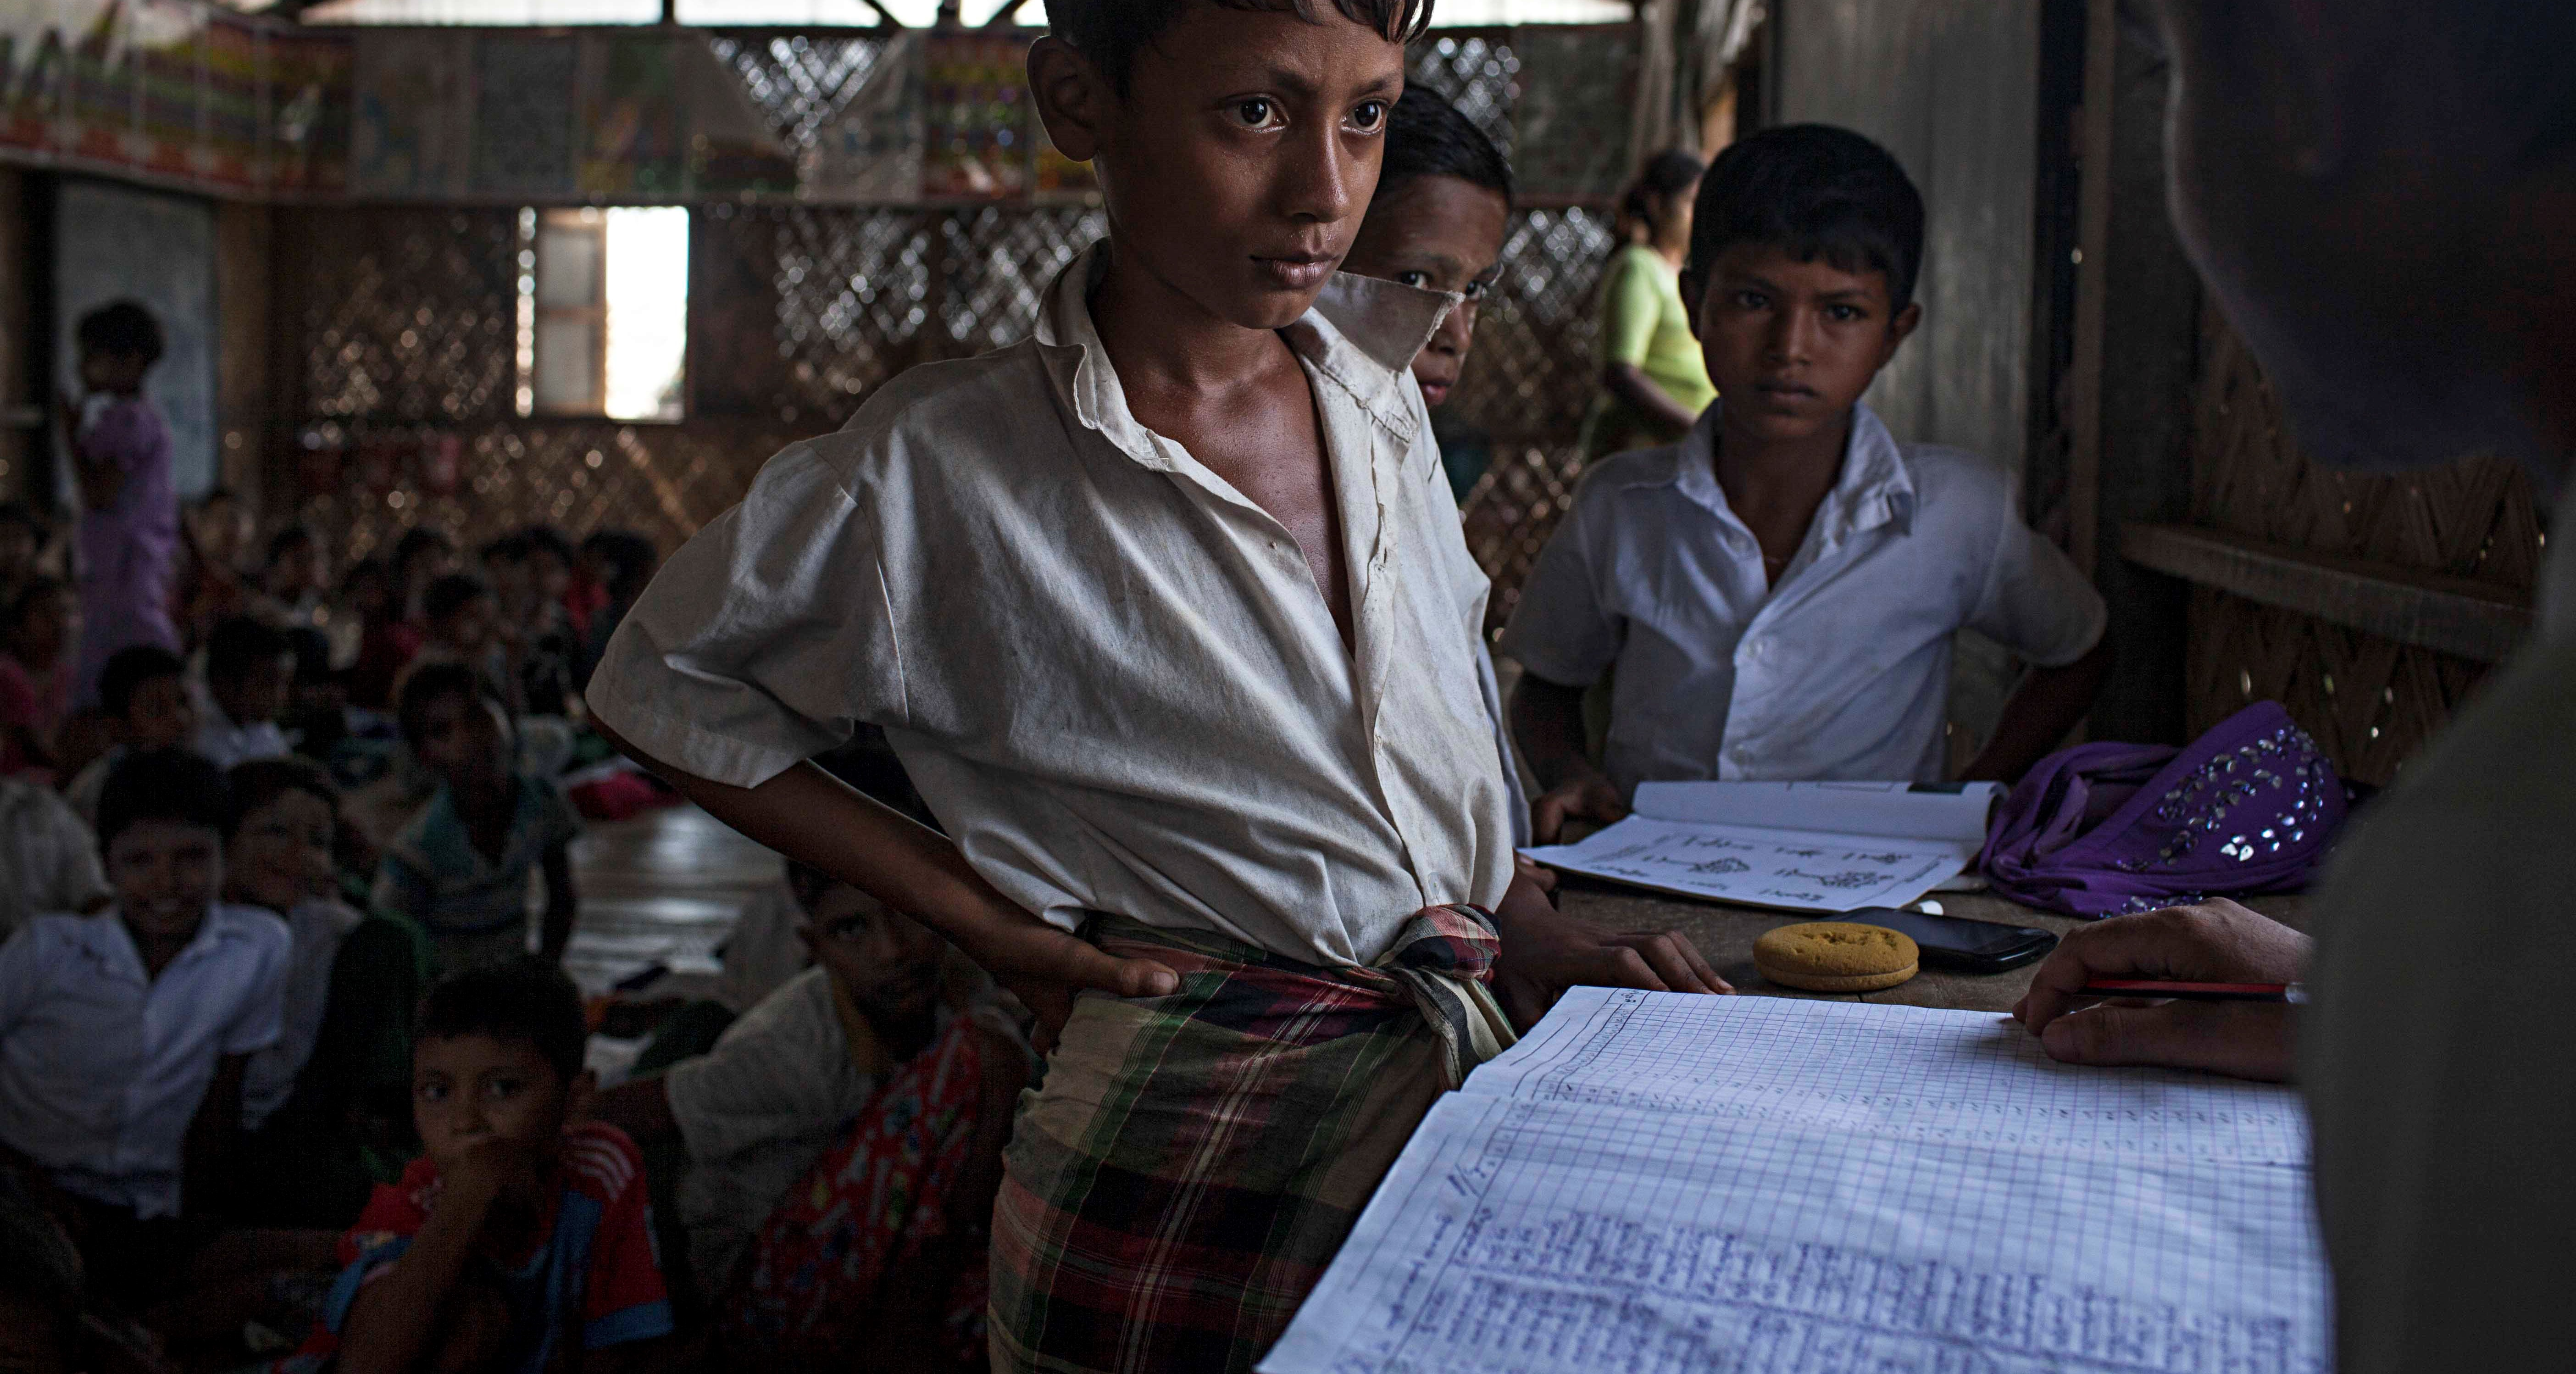 Rohingya children in an internally displaced persons camp in Myanmar, 2016 (Photo: Getty Images/Lauren DeCicca)